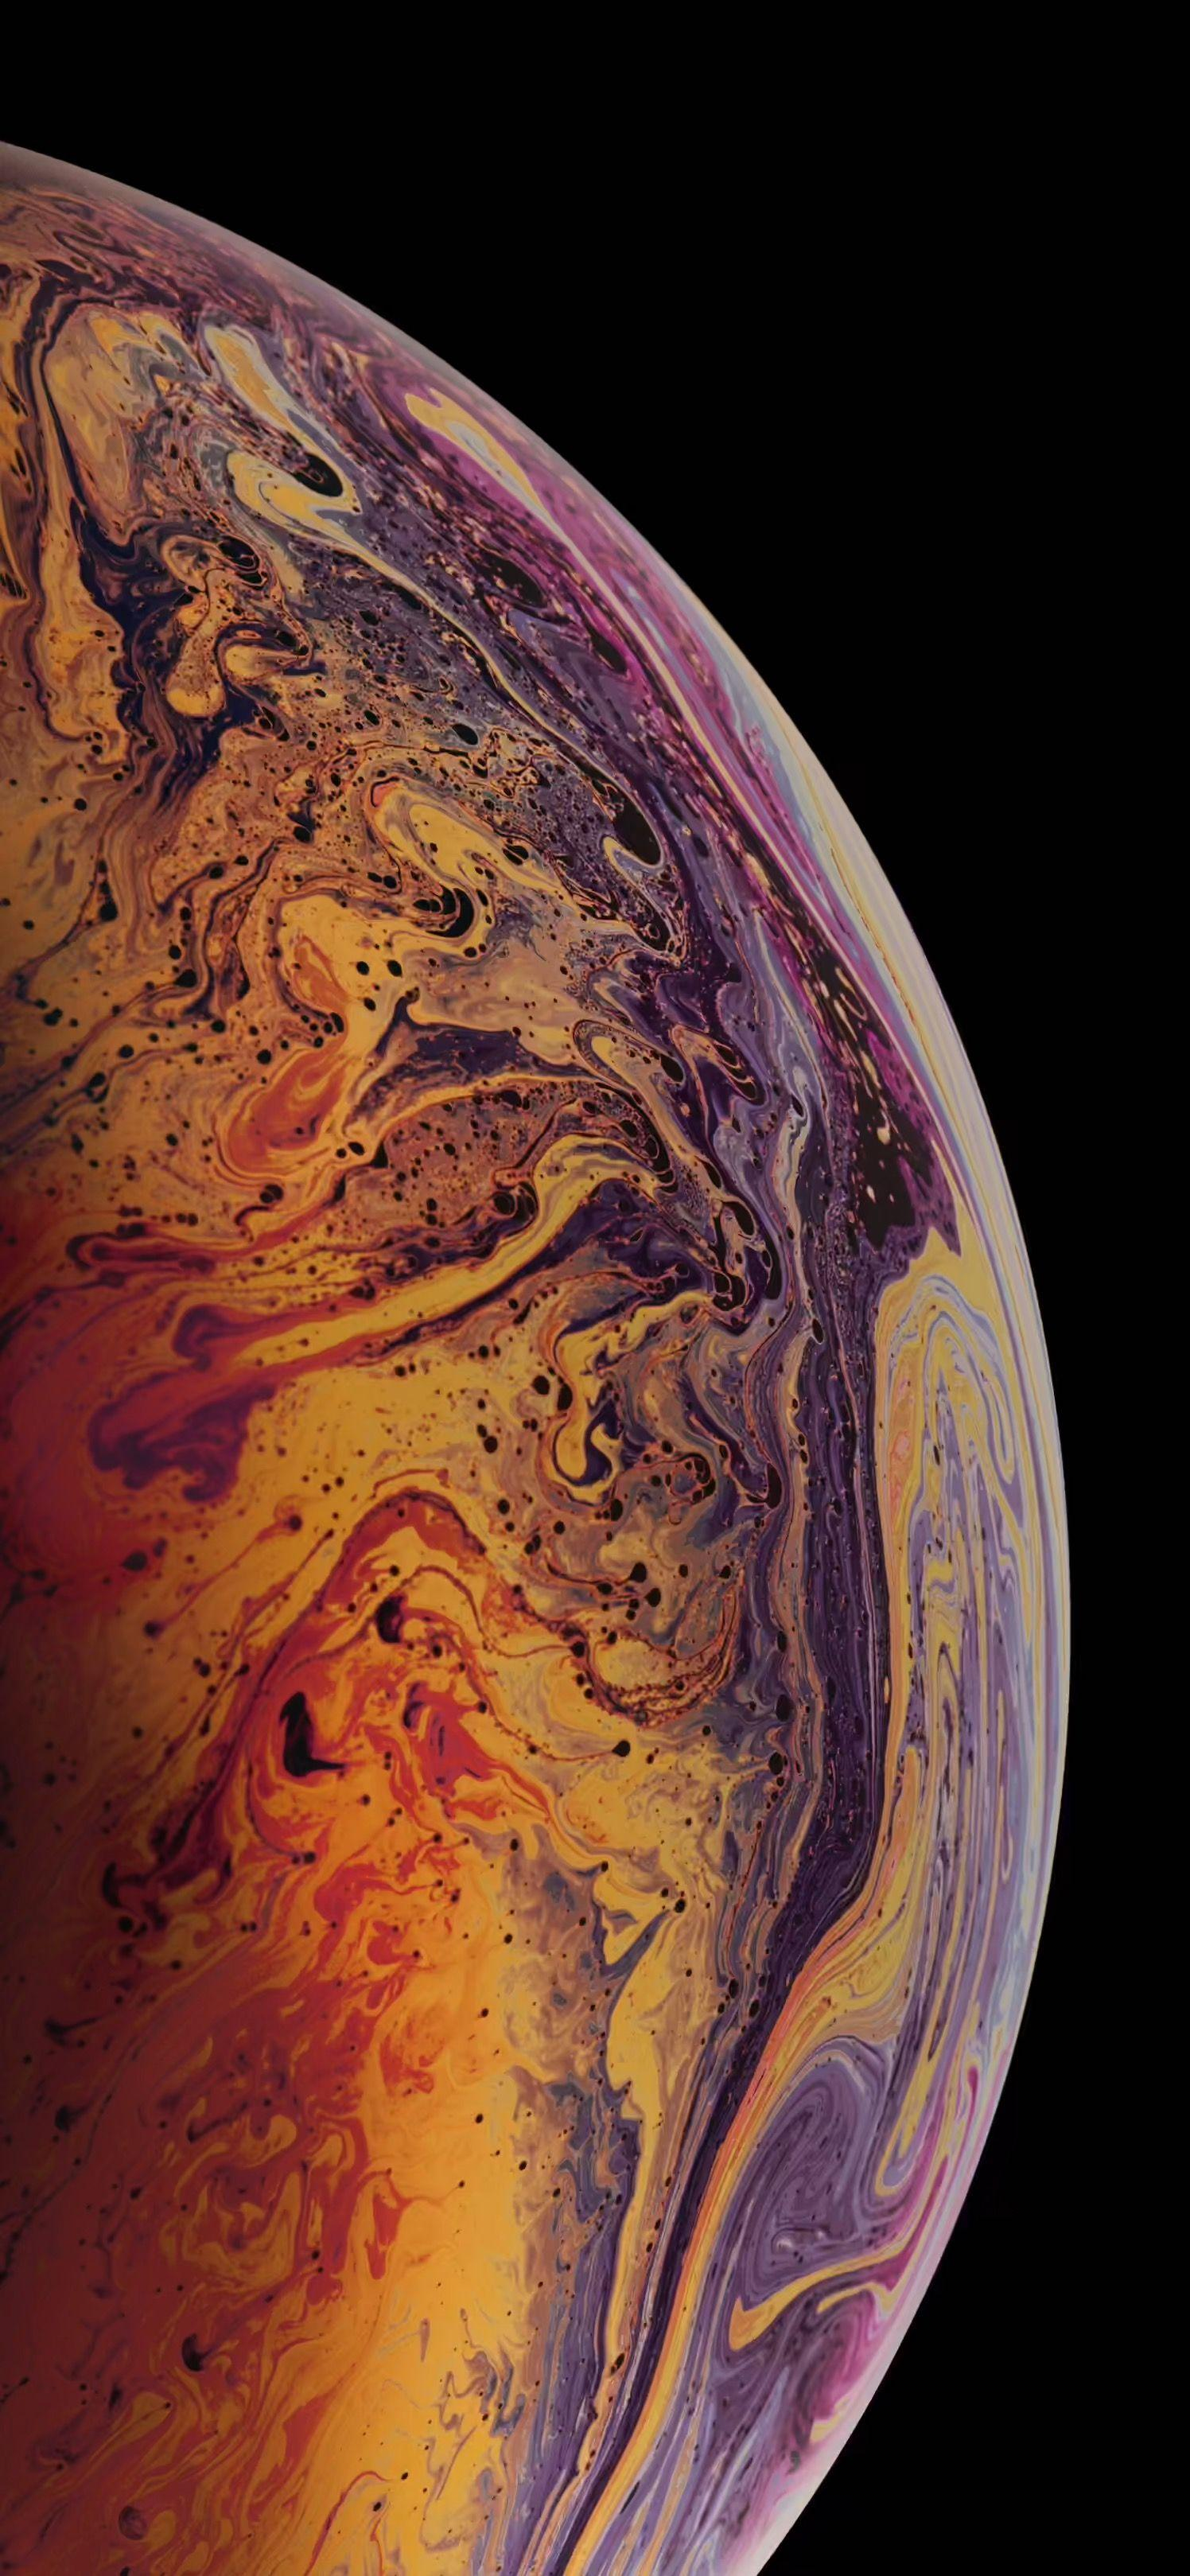 iPhone X Planets Wallpapers - Wallpaper